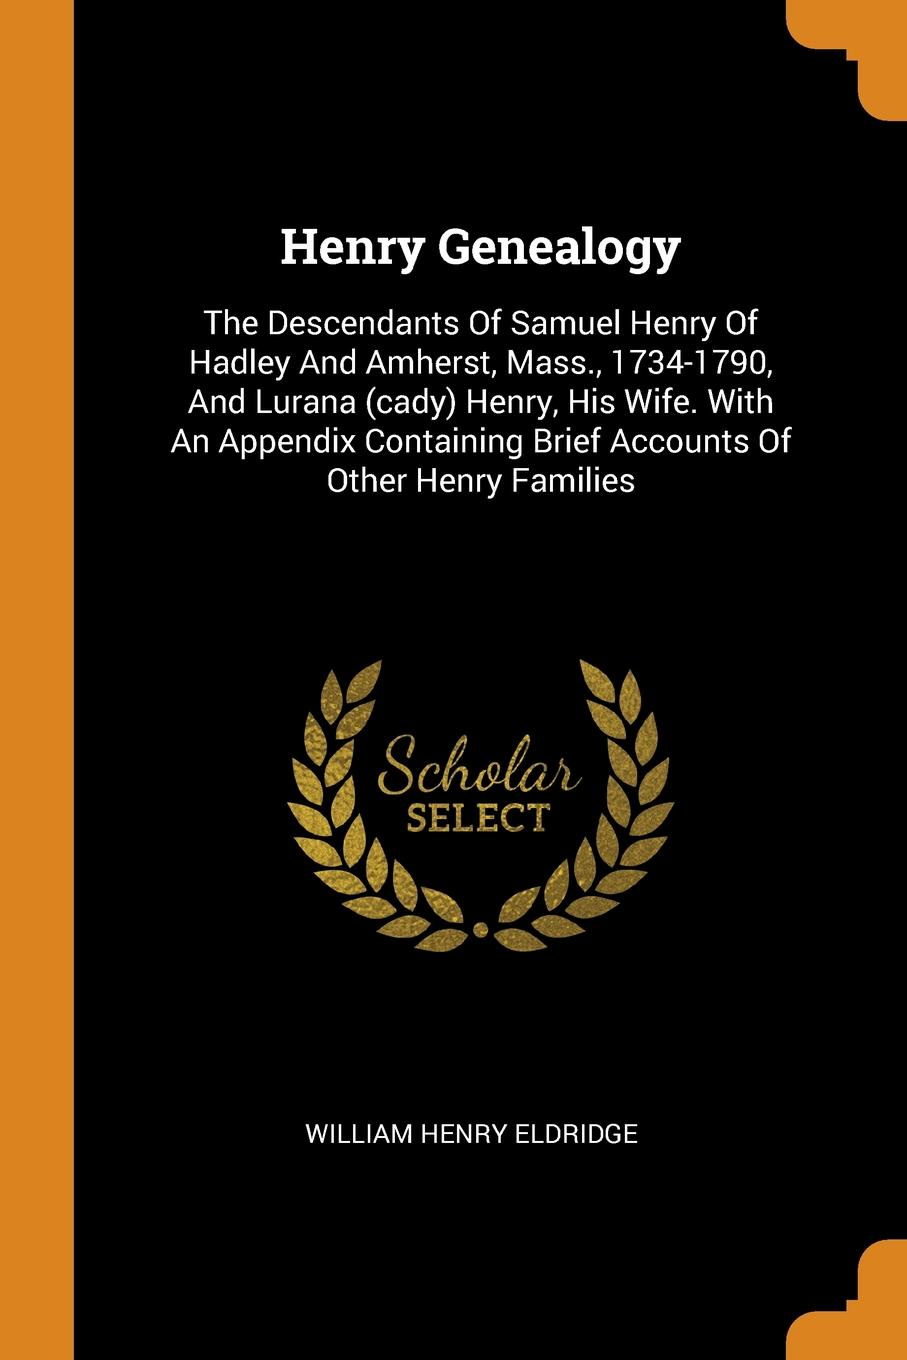 William Henry Eldridge Henry Genealogy. The Descendants Of Samuel Henry Of Hadley And Amherst, Mass., 1734-1790, And Lurana (cady) Henry, His Wife. With An Appendix Containing Brief Accounts Of Other Henry Families samuel orcutt henry tomlison and his descendants in america